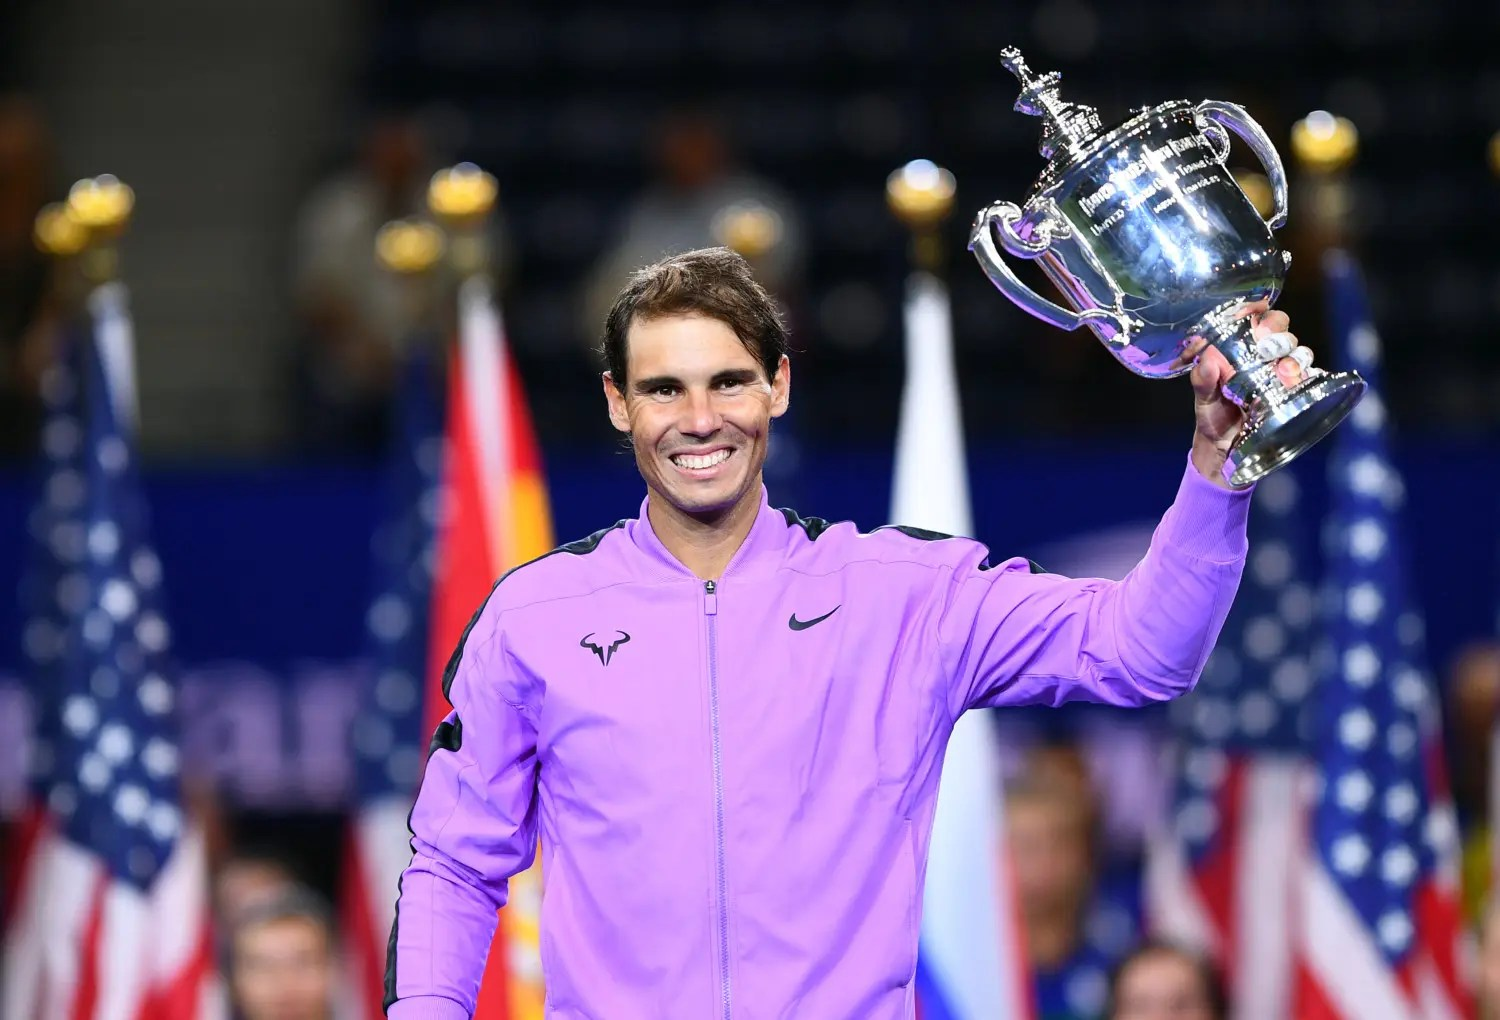 Rafael Nadal survives Daniil Medvedev charge to win US Open